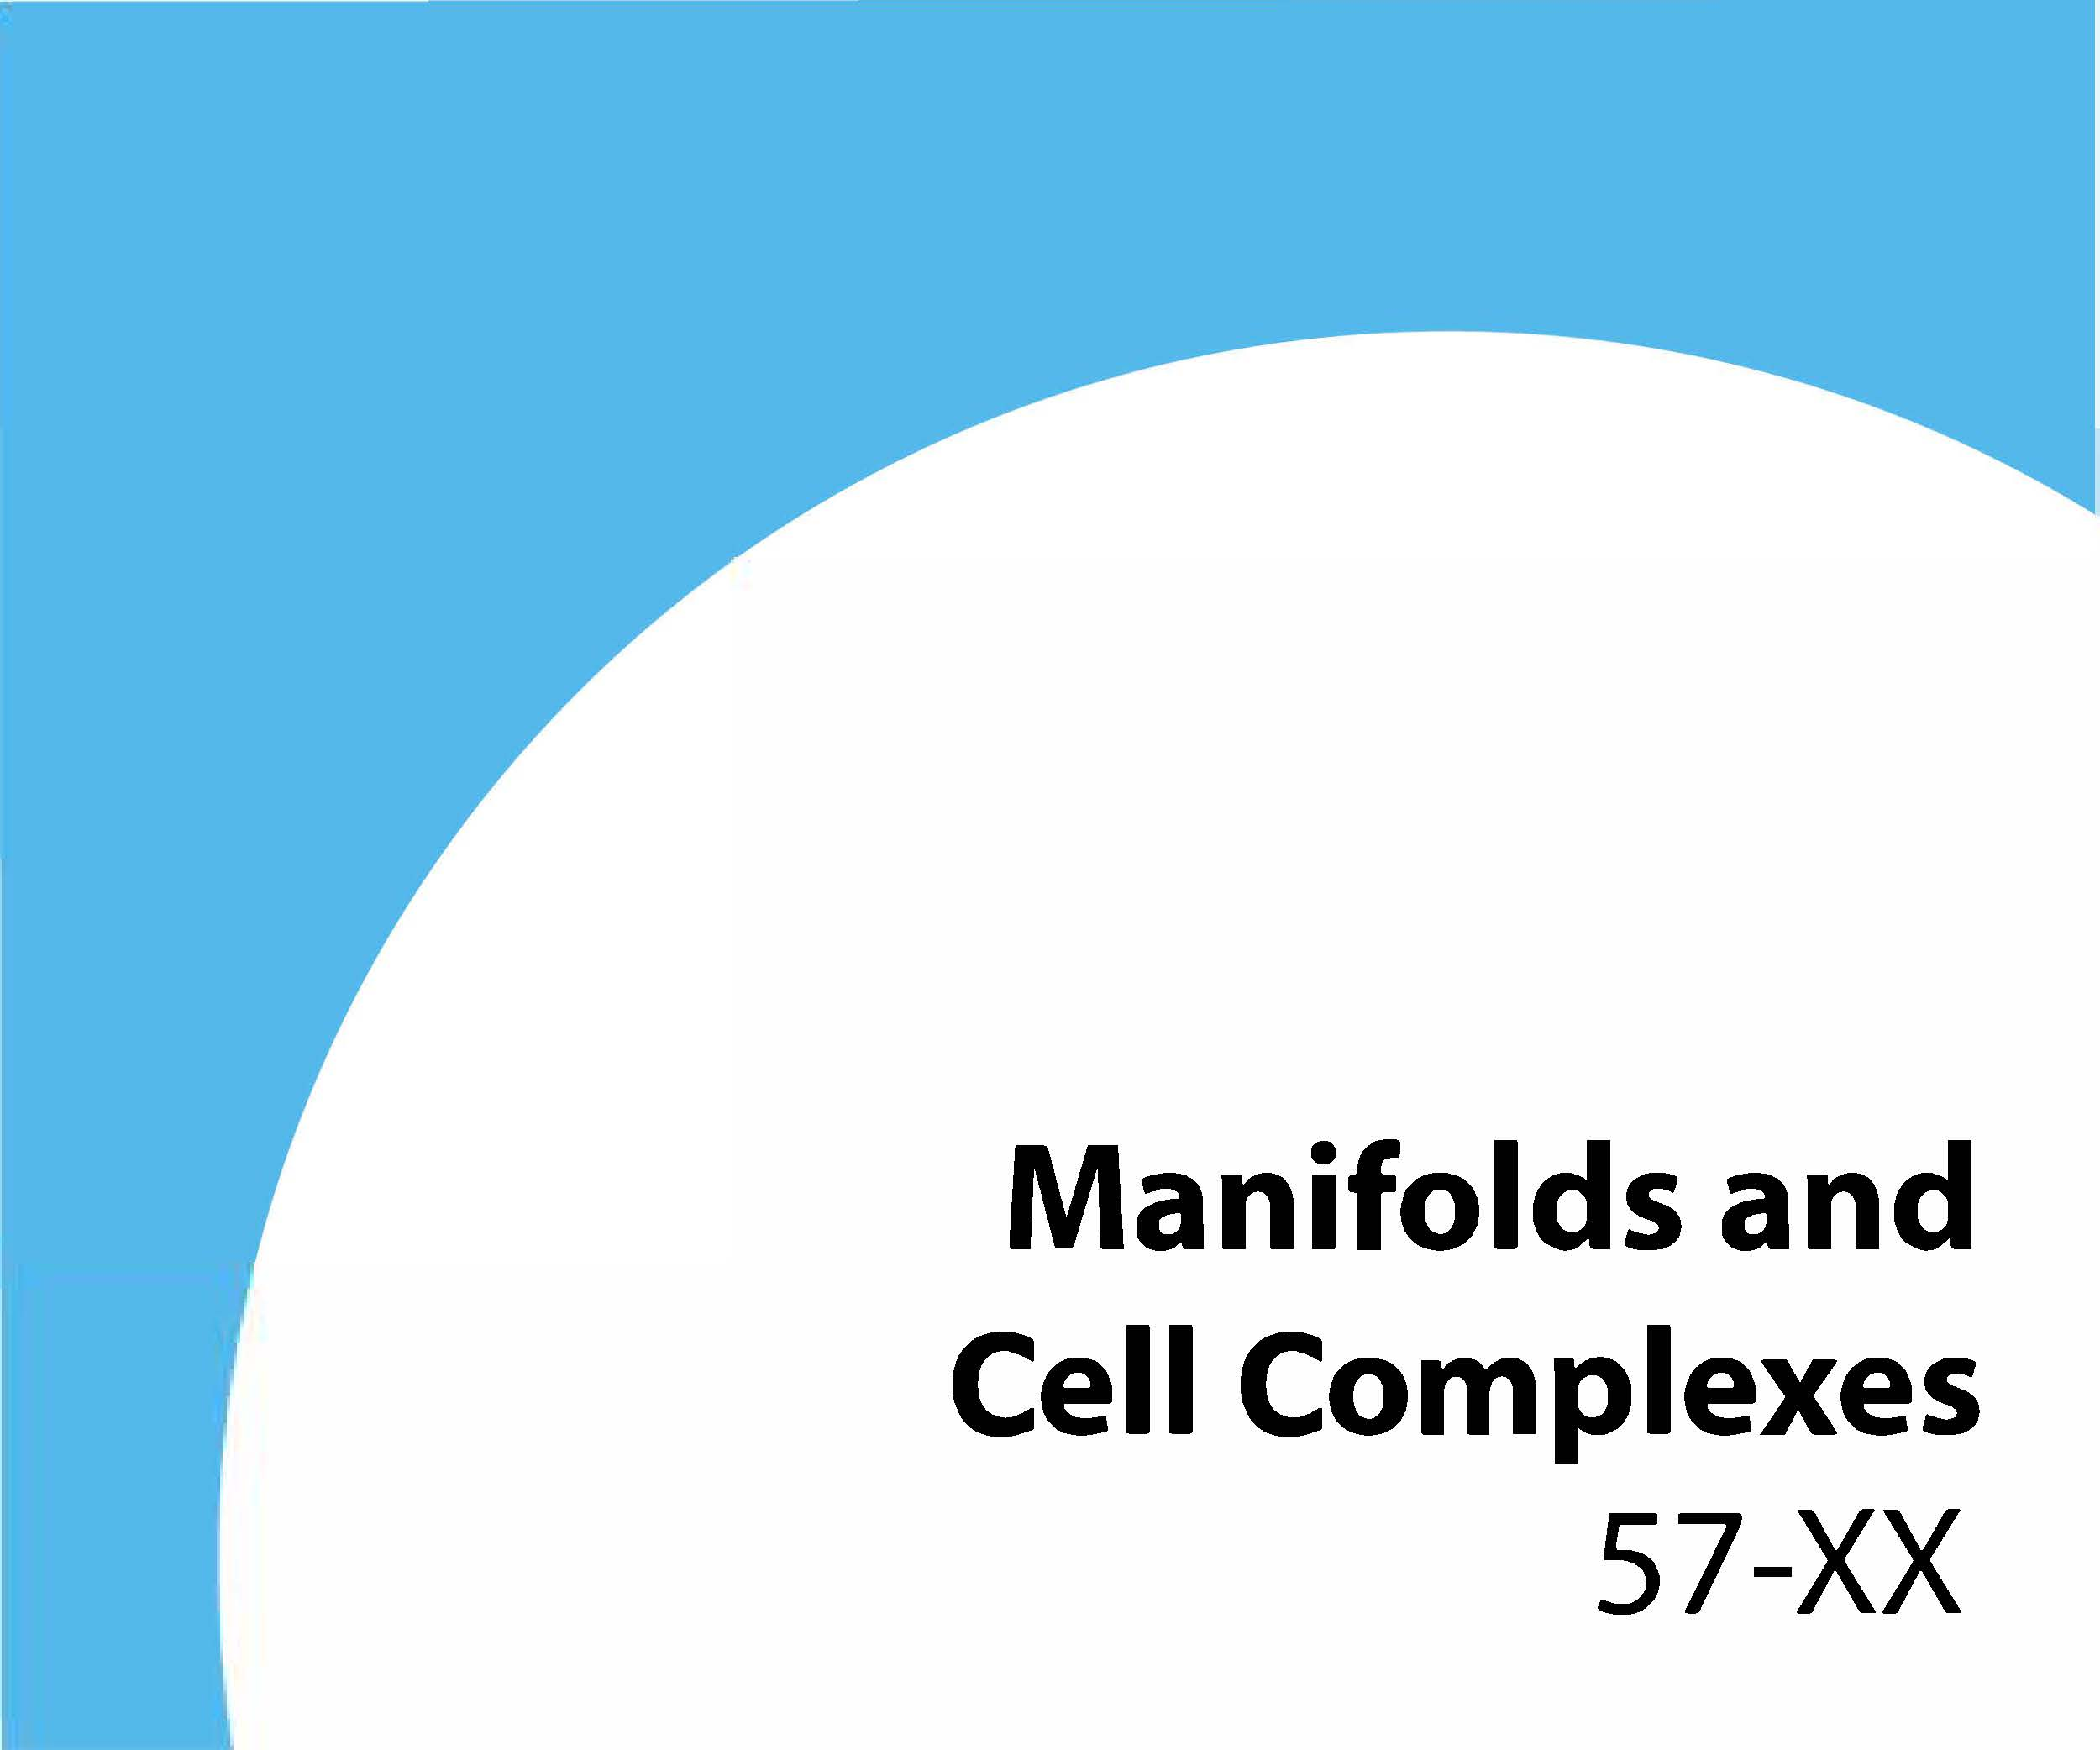 57-xx Manifolds and cell complexes